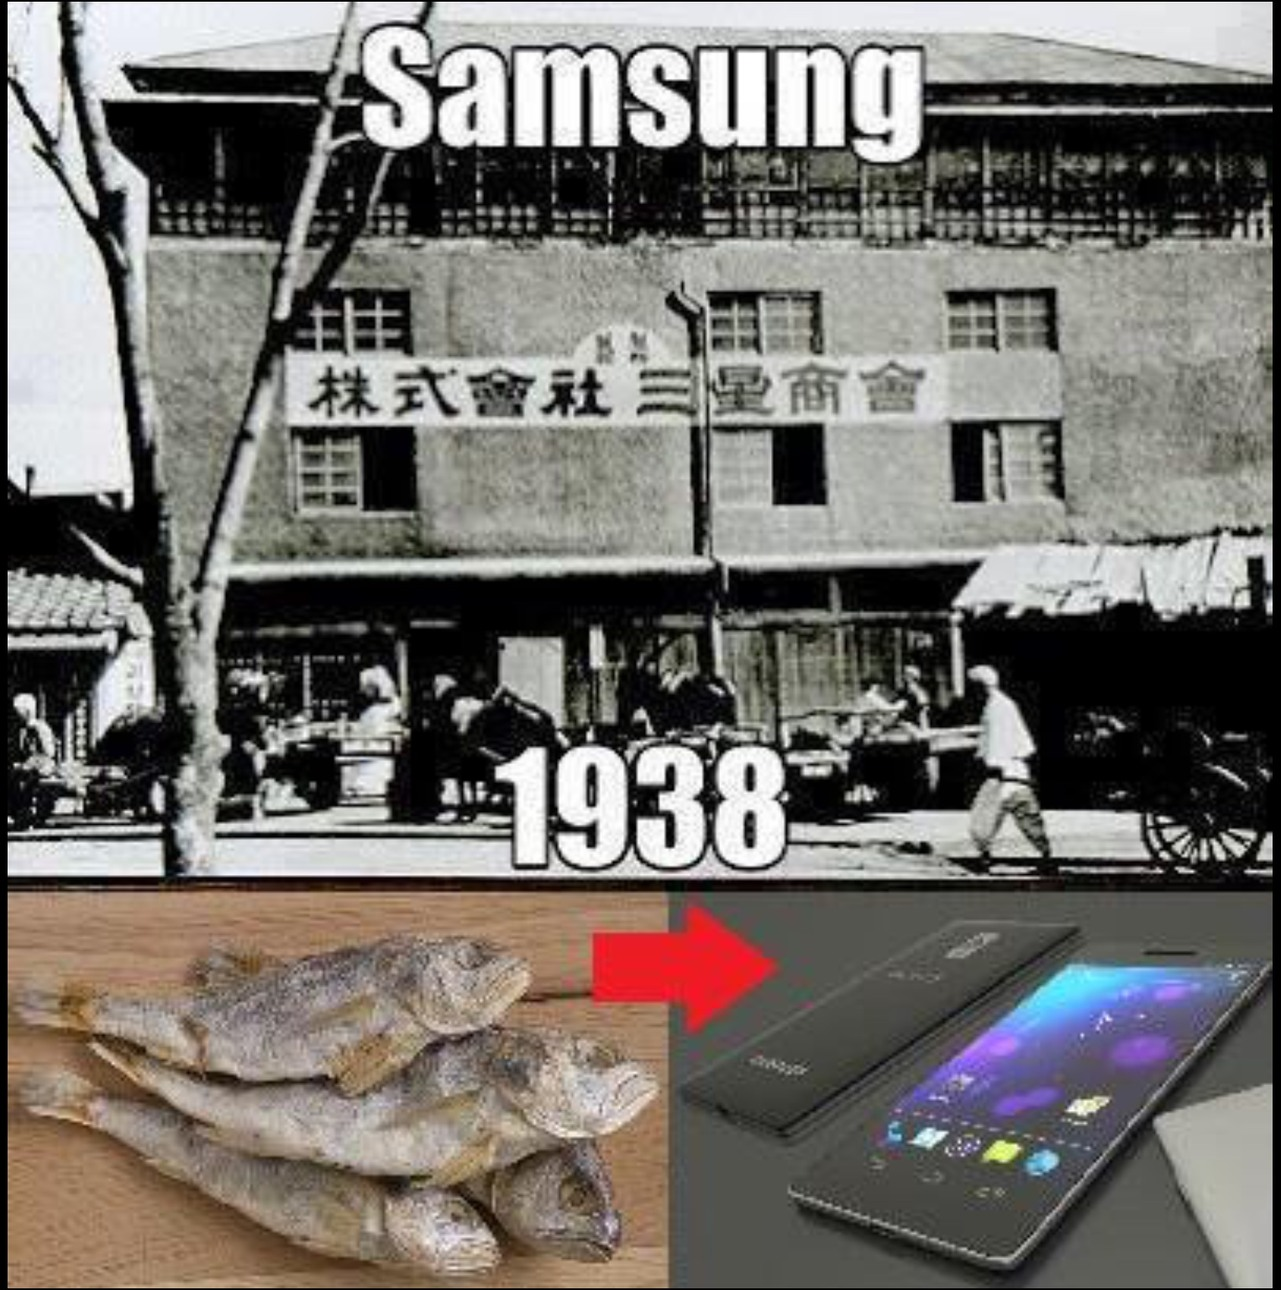 Samsung's first product was dried fish - meme